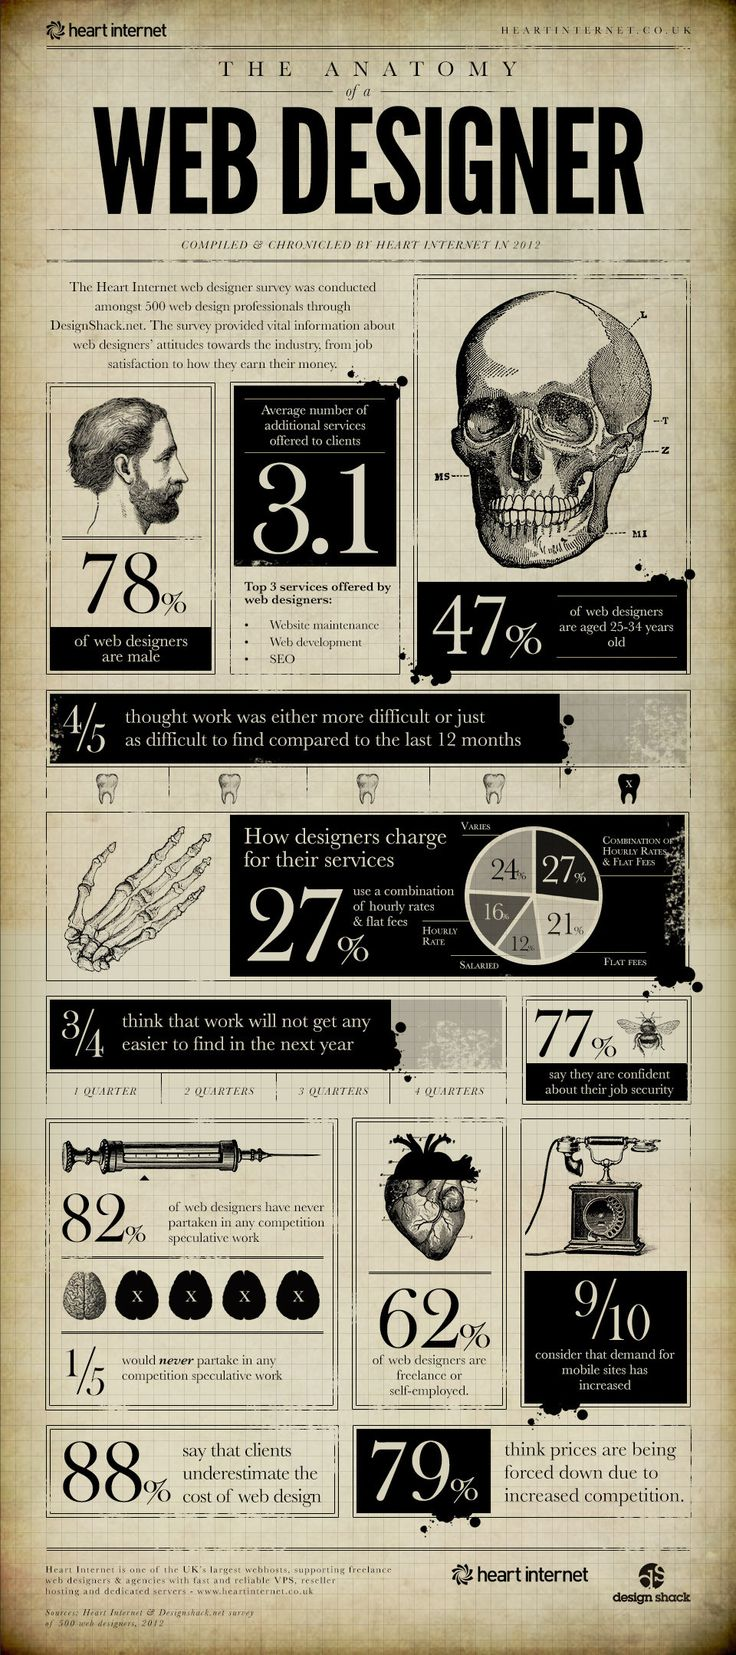 Unique Infographic Design, The Anatomy Of A Web Designer #Infographic #Design (http://www.pinterest.com/aldenchong/)